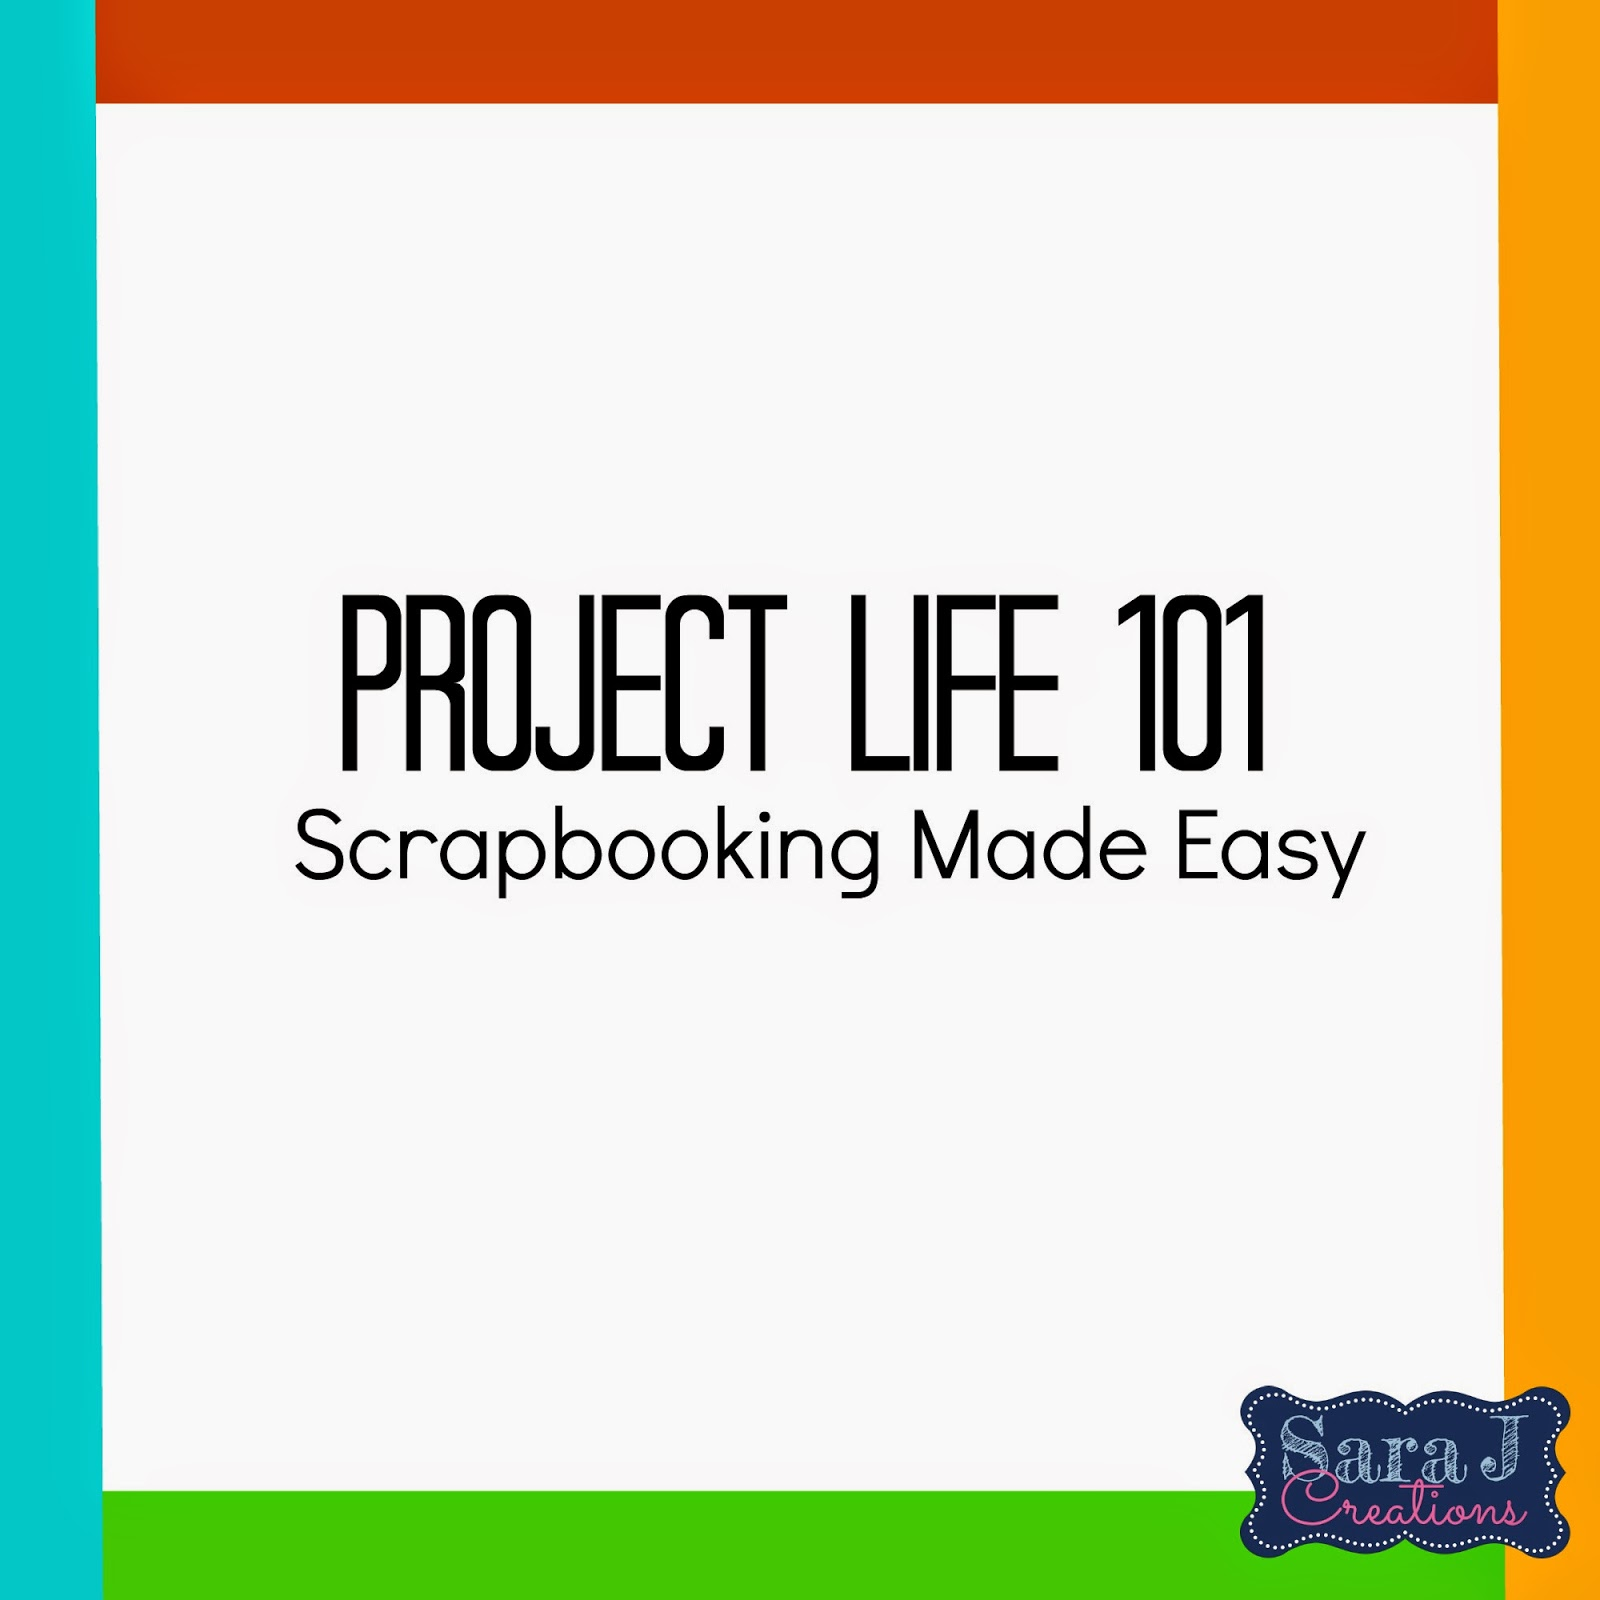 How to scrapbook with project life - Project Life Adding Videos To Your Scrapbook